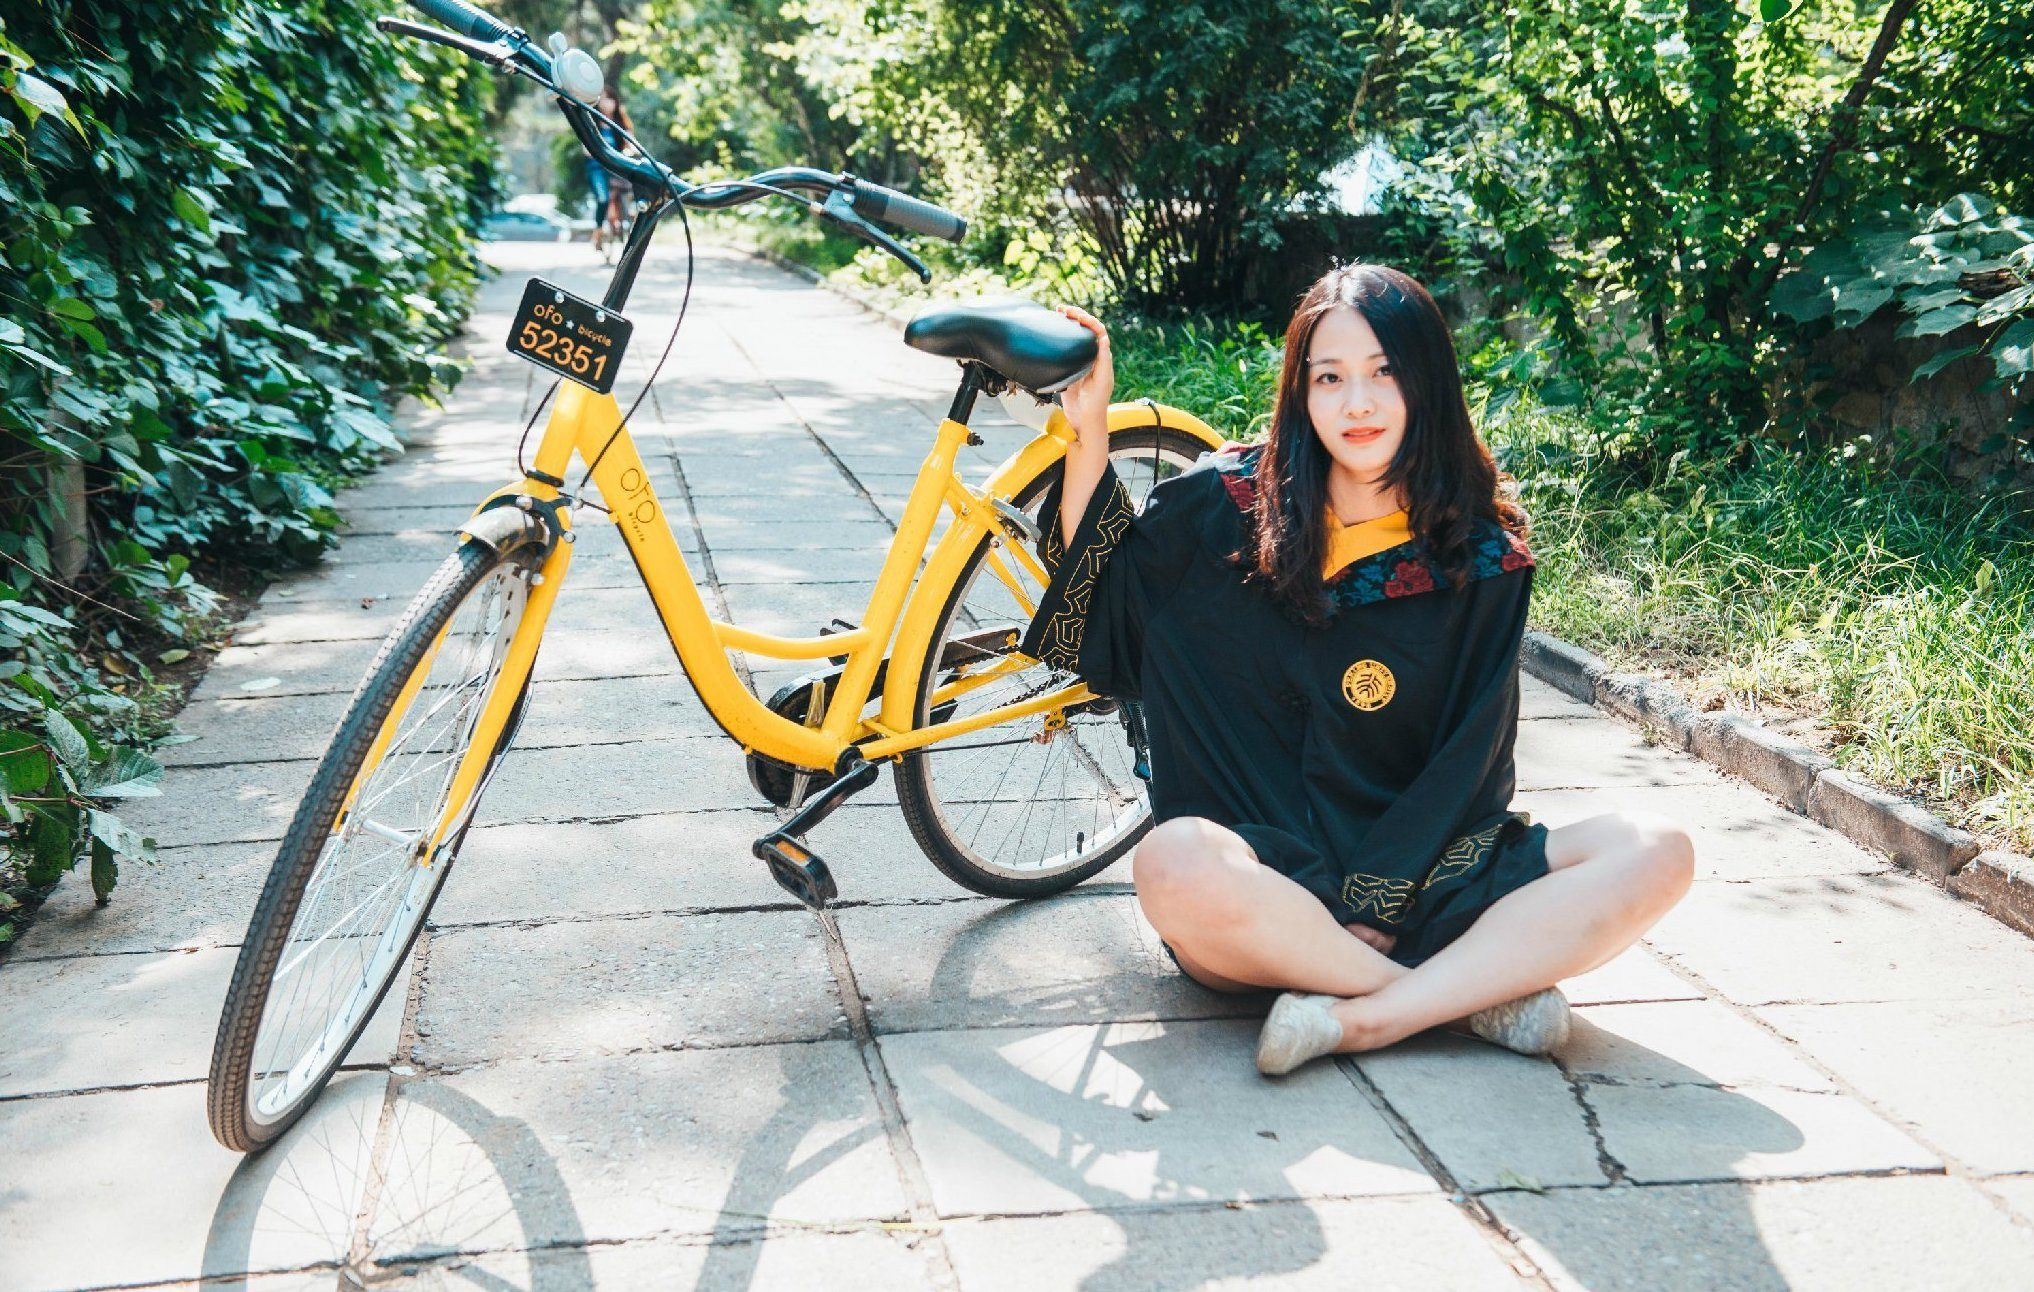 Didi funds OFO to make bike-sharing a thing